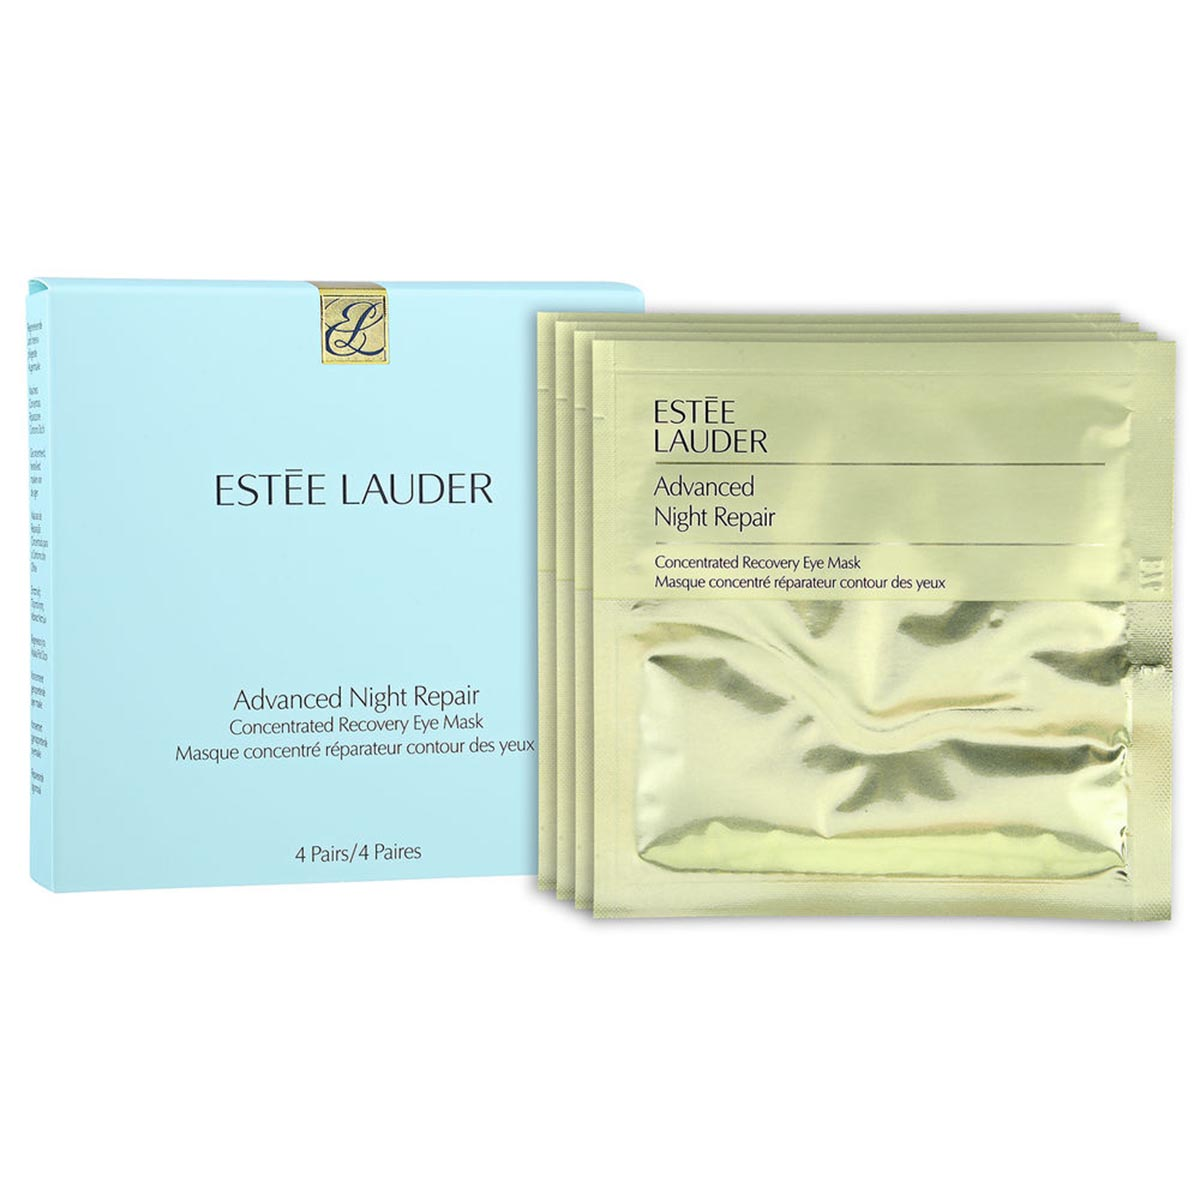 Estee lauder advanced night repair concentrated recovery eye mask 4ud